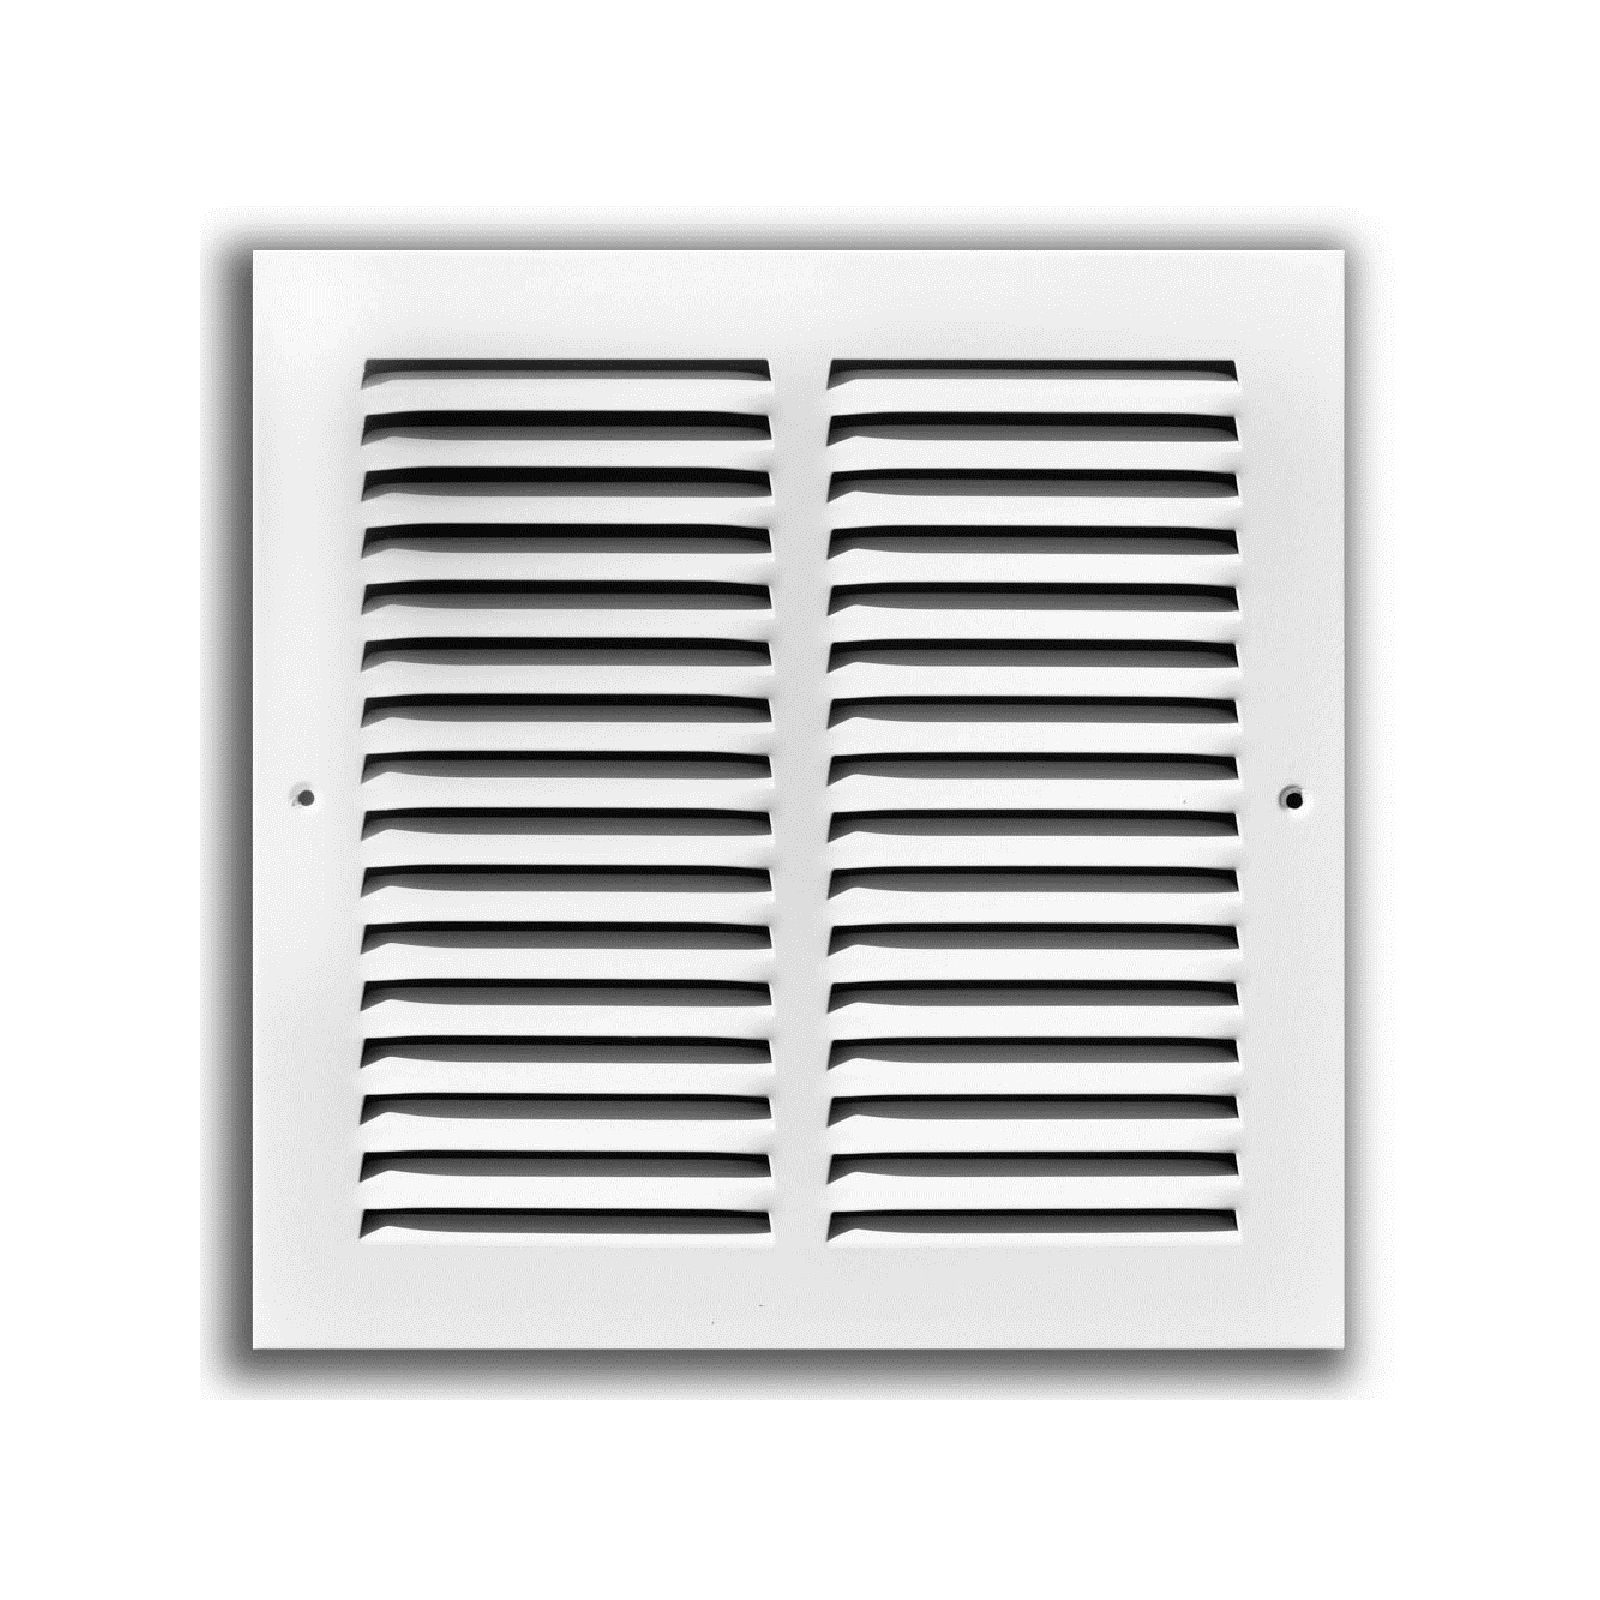 "TRUaire 170 36X16 - Steel Return Air Grille - 1/2"" Spaced Fin, White, 36"" X 16"""